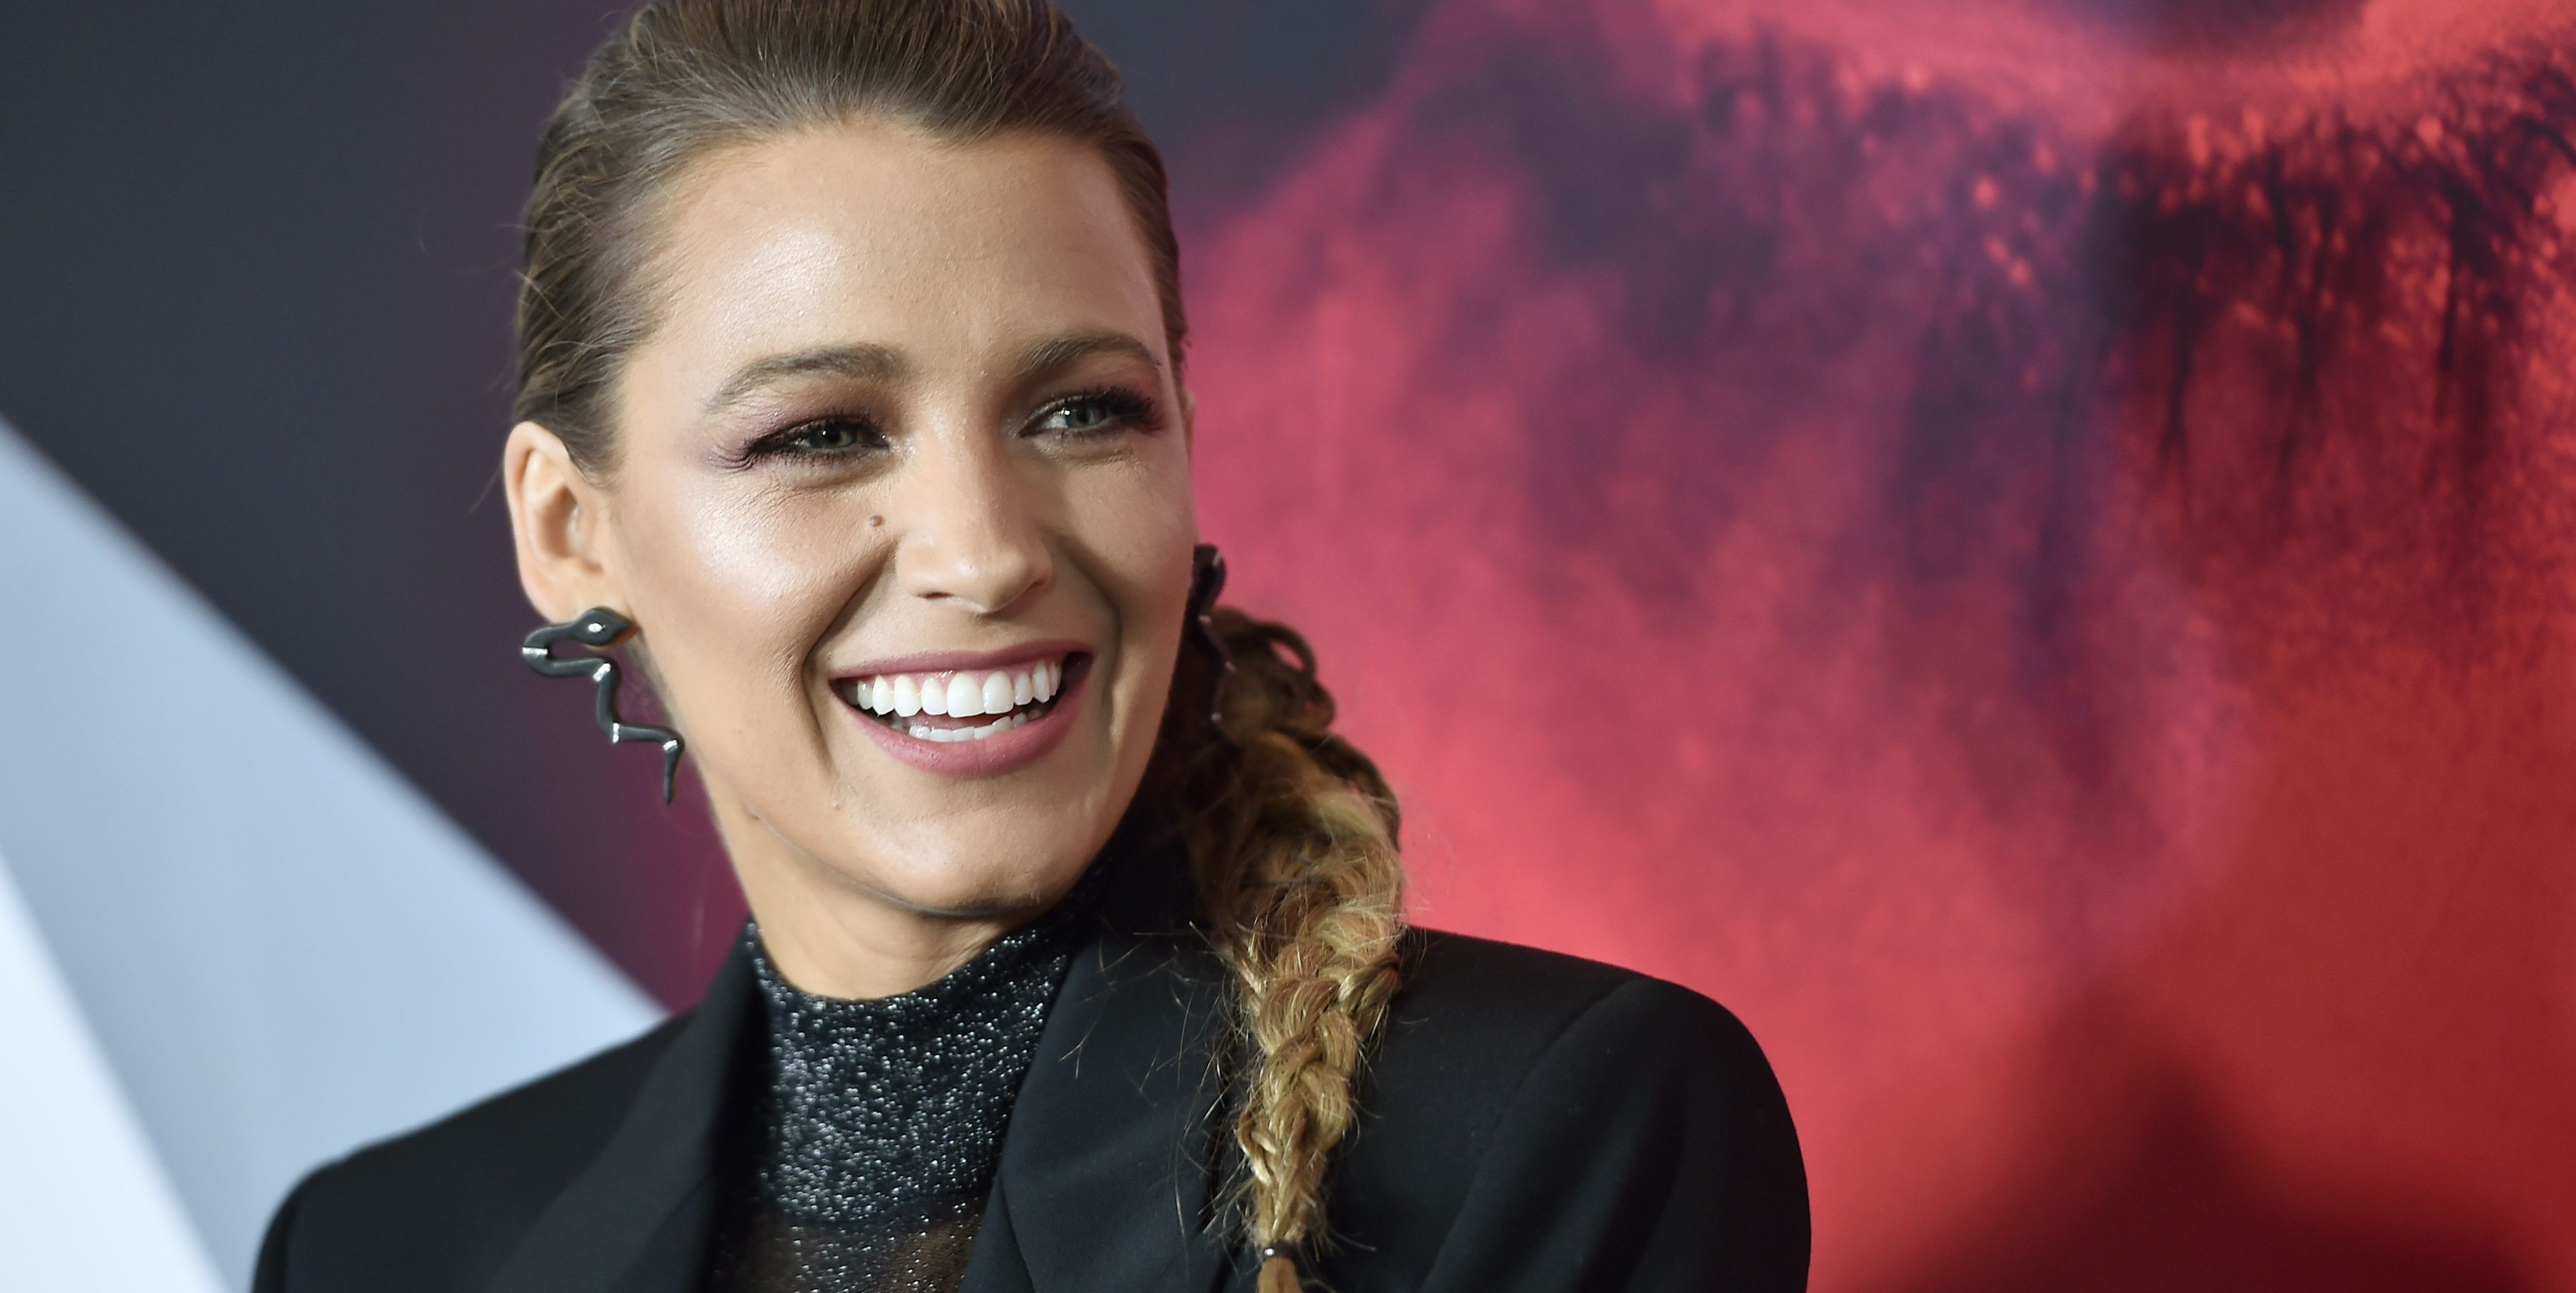 Blake Lively Thought a Photographer Was Complimenting Her Boobs But He Was Complimenting Her Tweets